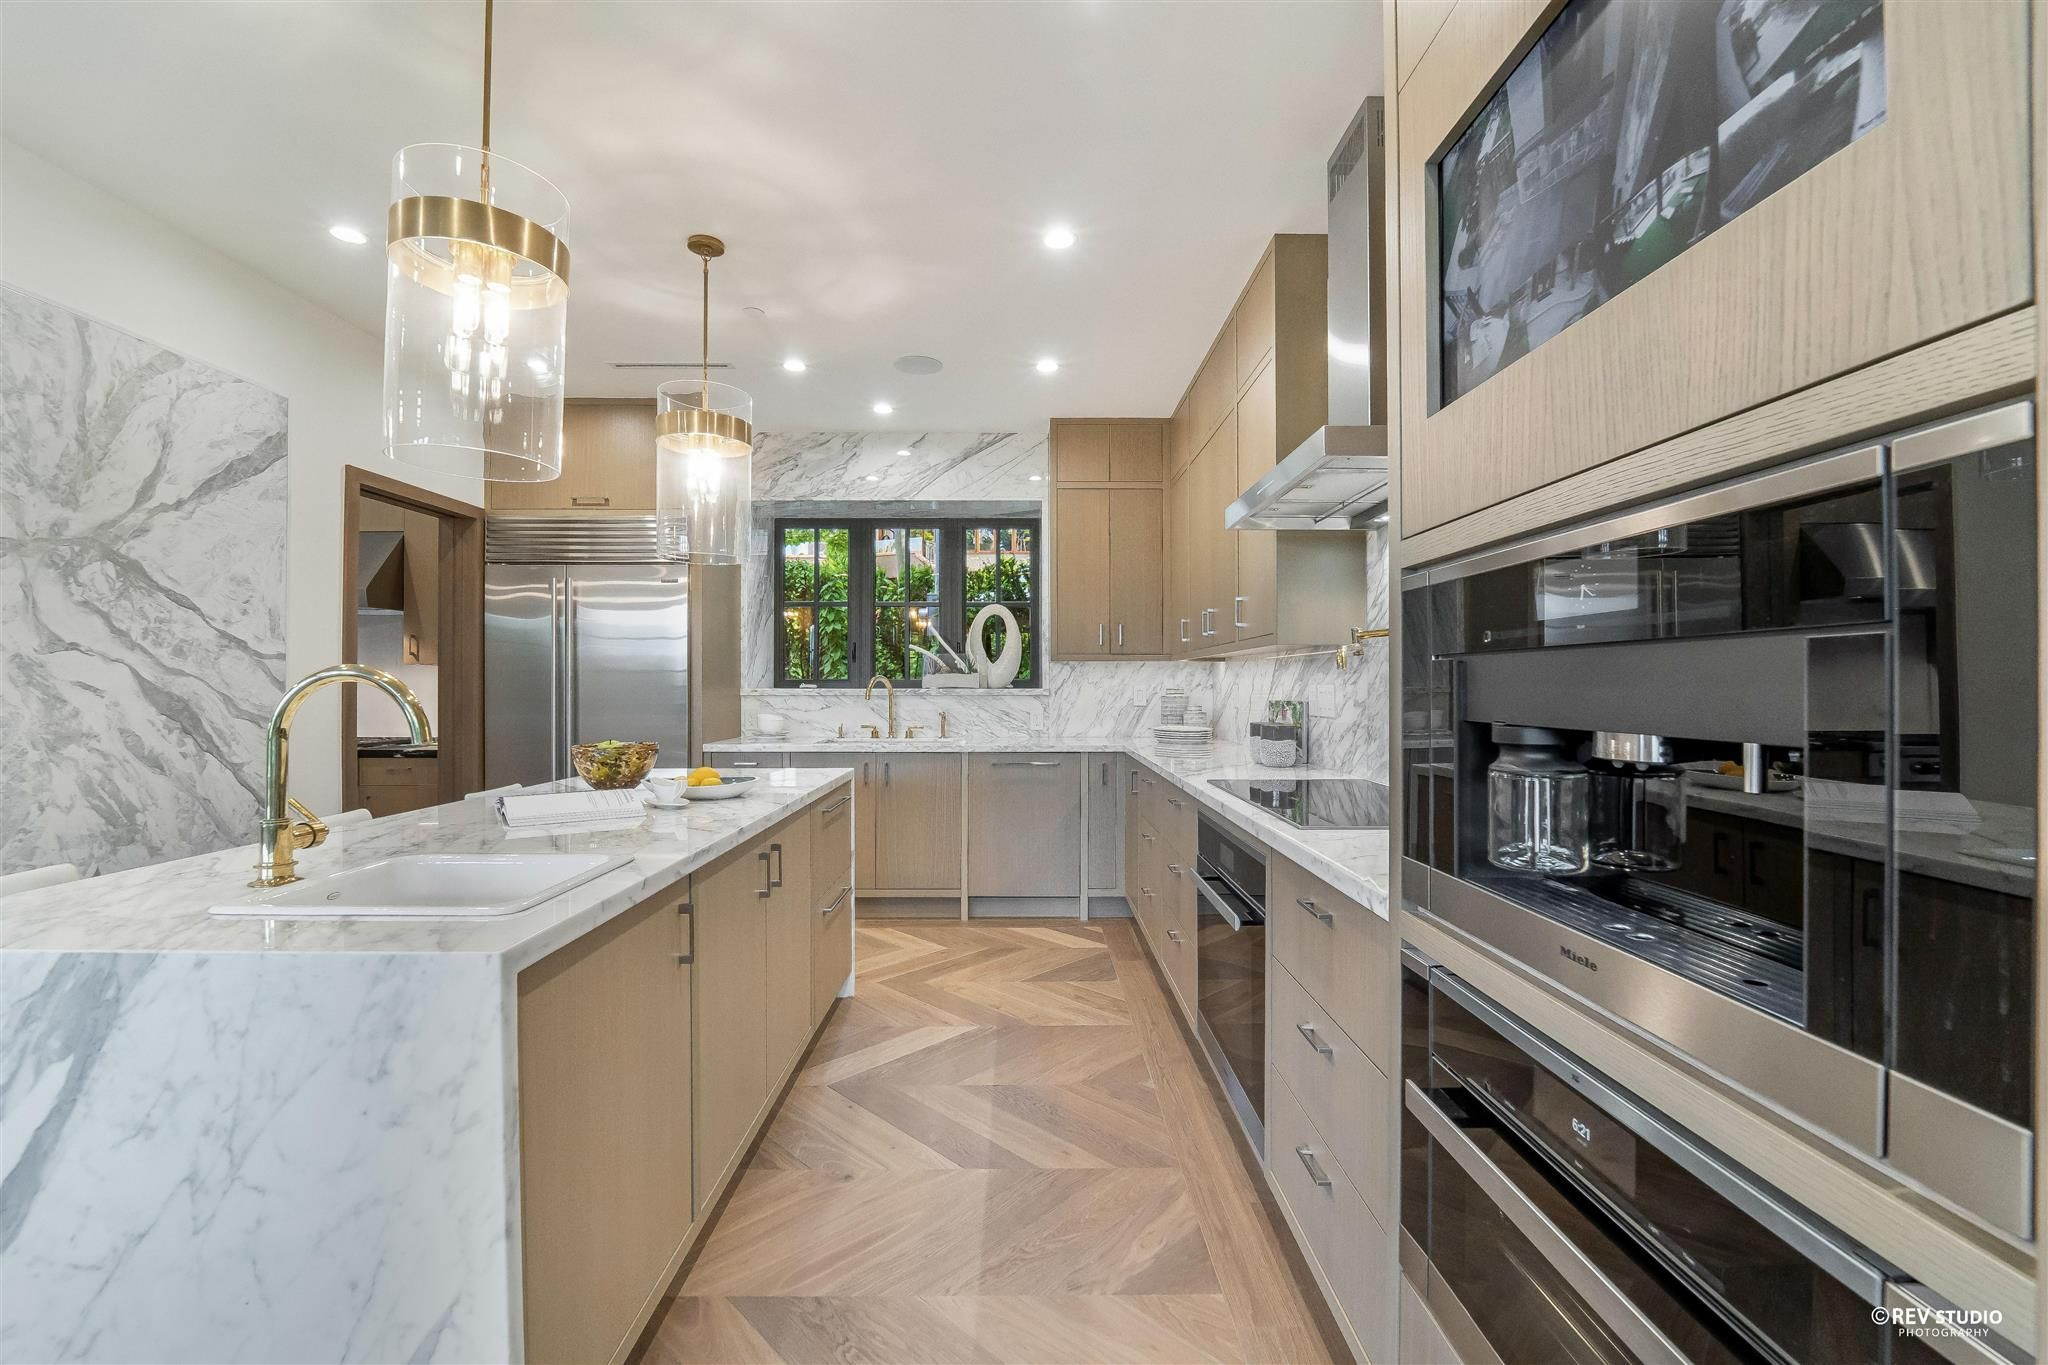 Photo 15: Photos: 1699 SASAMAT Street in Vancouver: Point Grey House for sale (Vancouver West)  : MLS®# R2591066